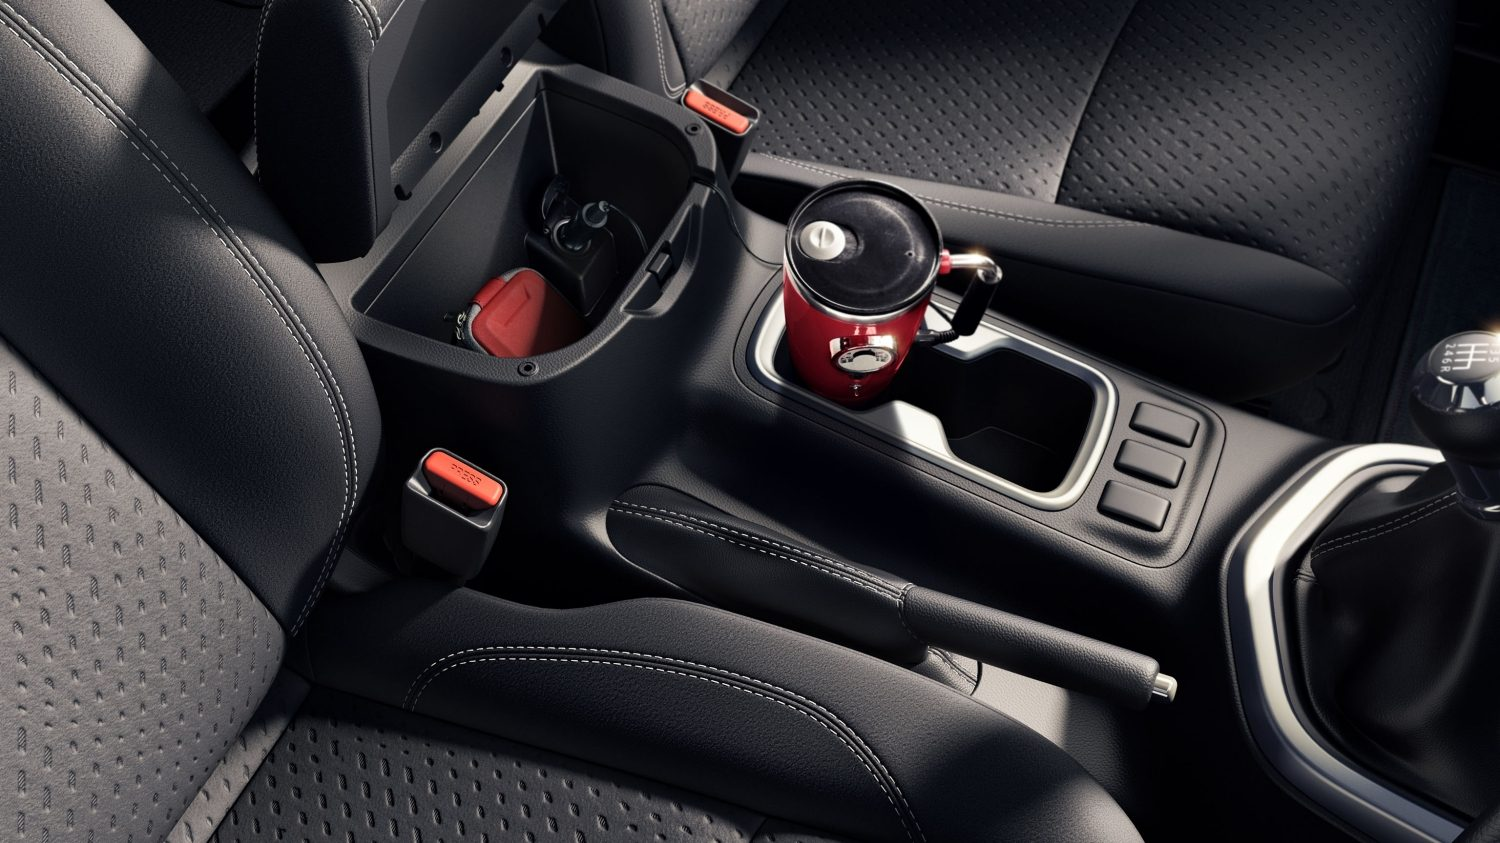 Nissan Navara centre console with mug in cupholder